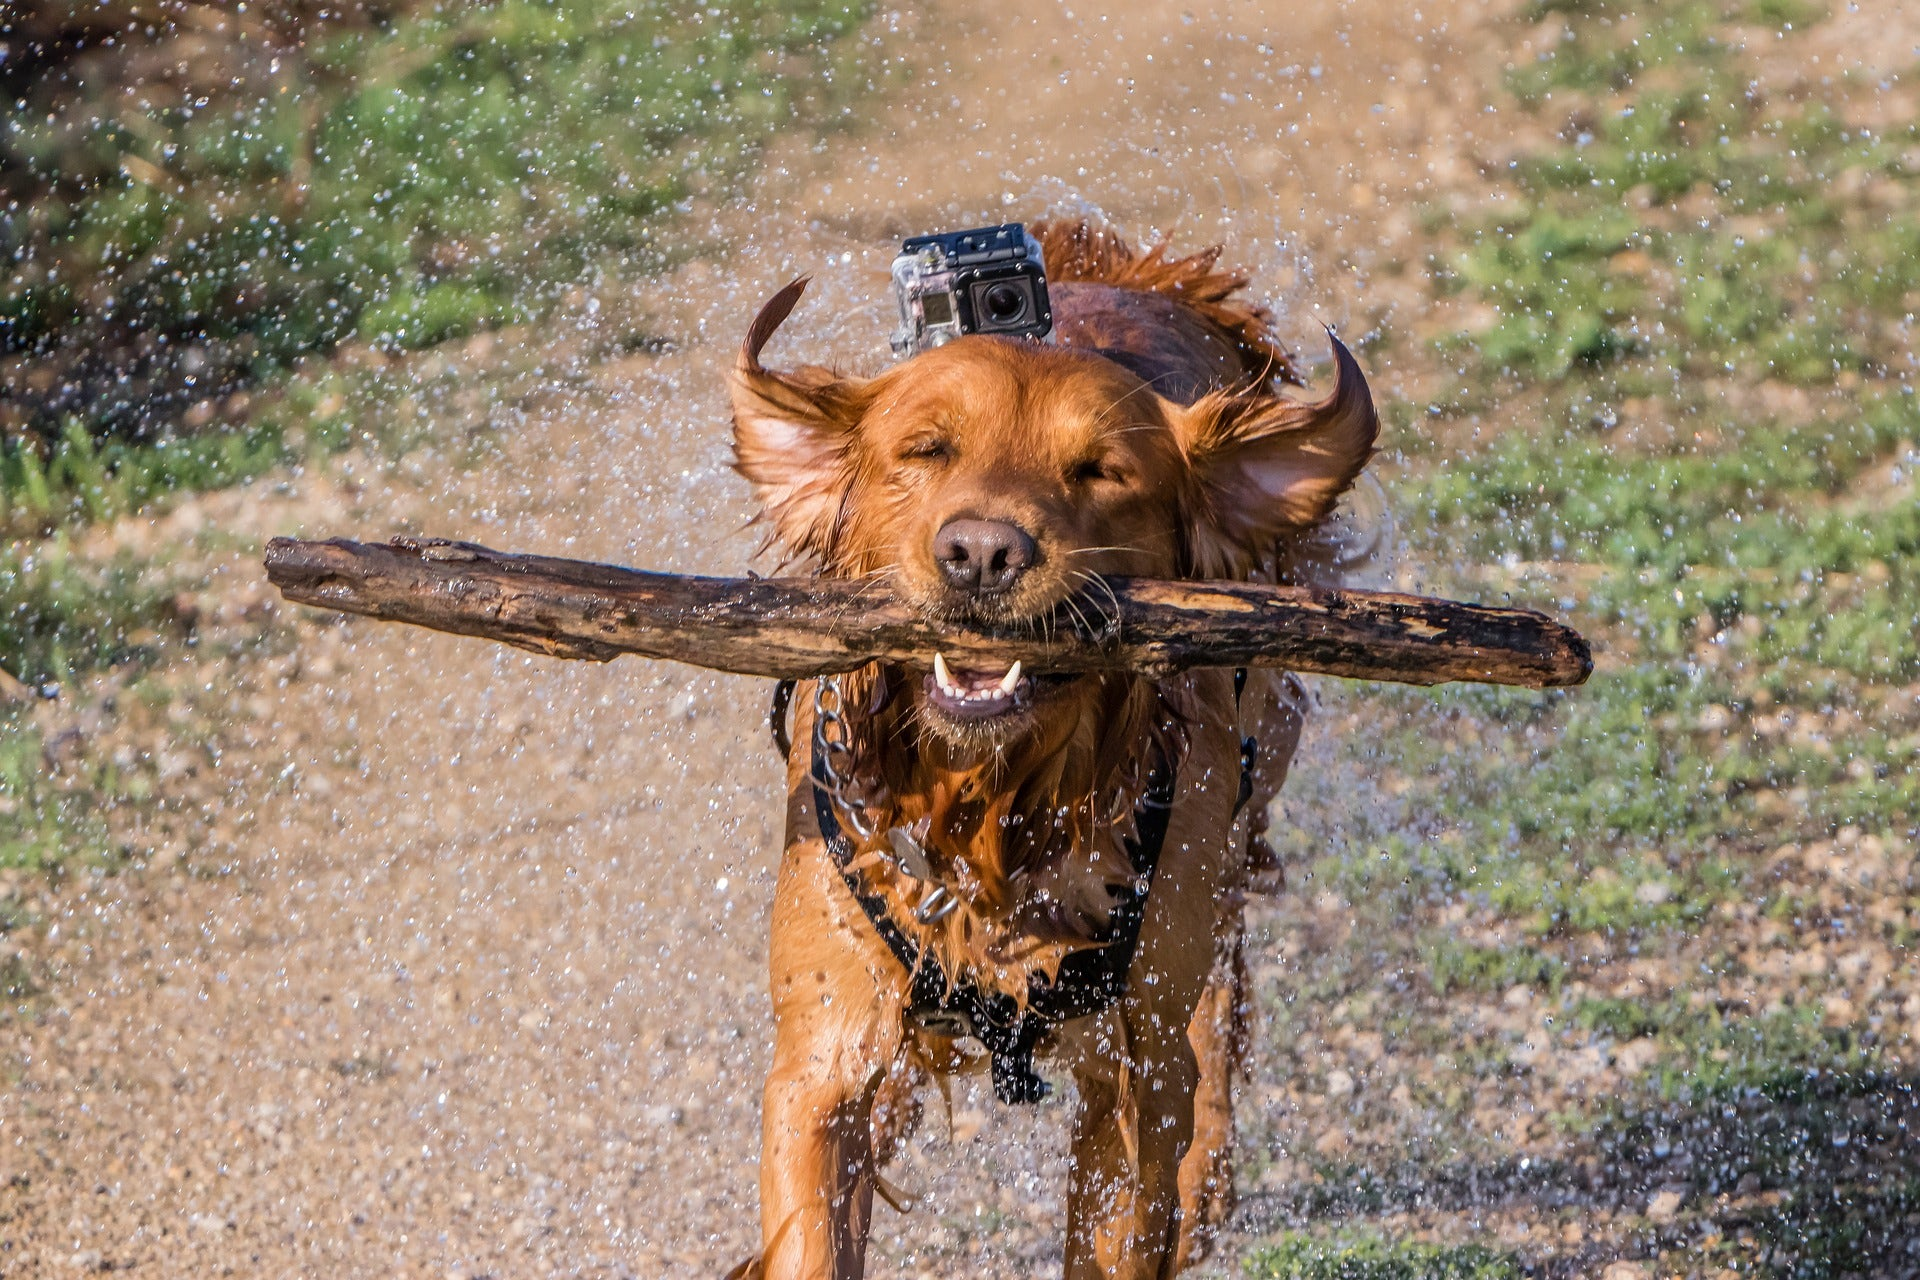 dog-has-fun-outdoors-with-action-camera-attached